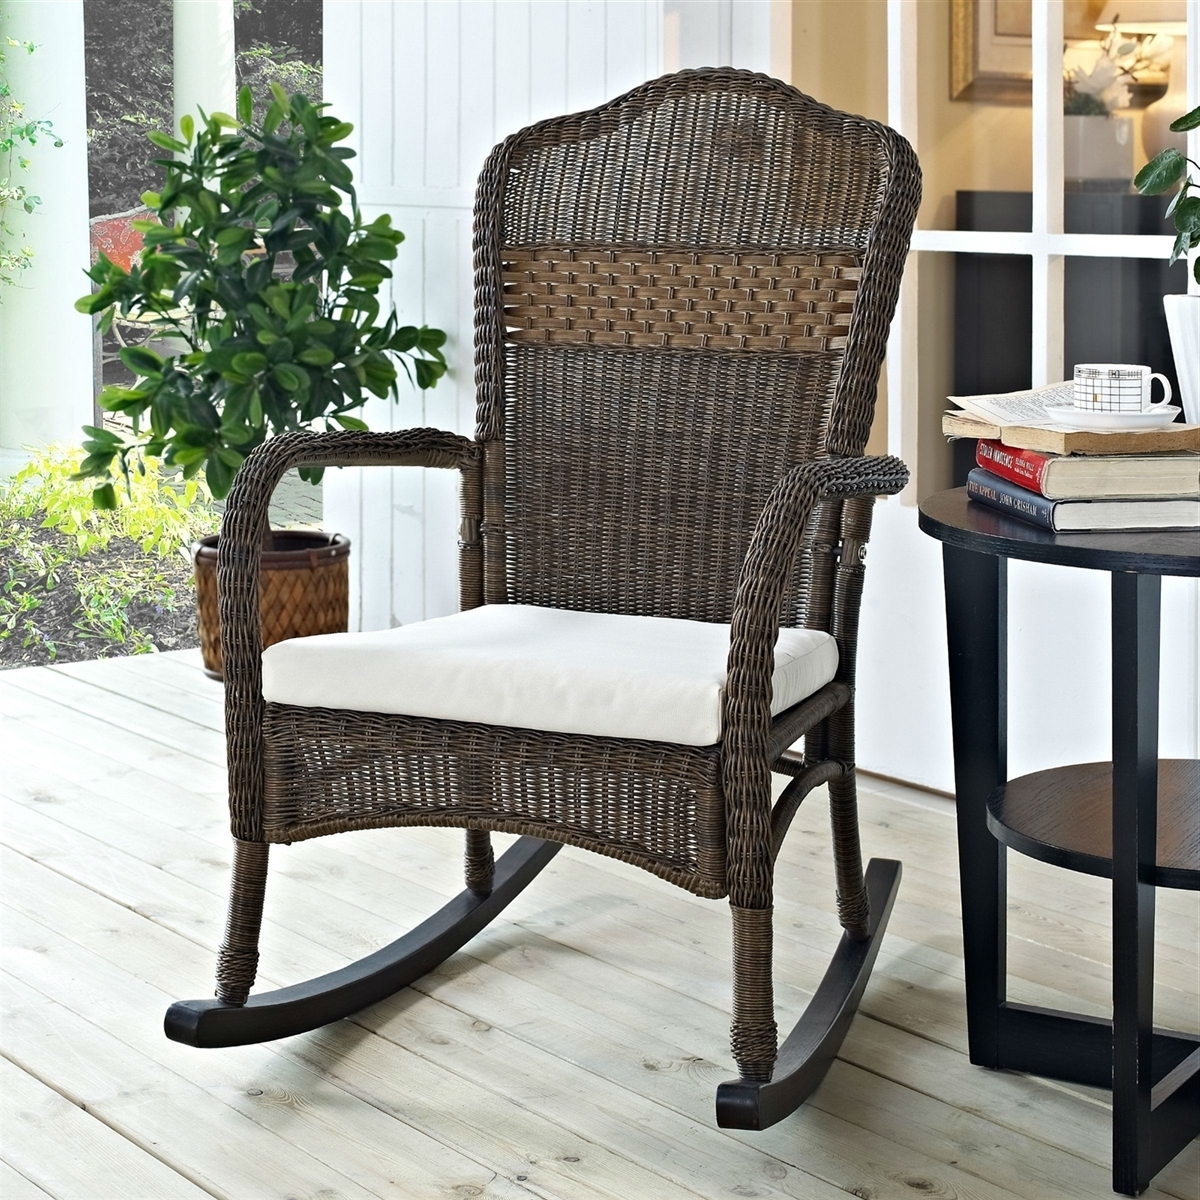 Indoor Wicker Rocking Chairs Inside Famous Wicker Patio Furniture Rocking Chair Mocha With Beige Cushion (View 9 of 20)